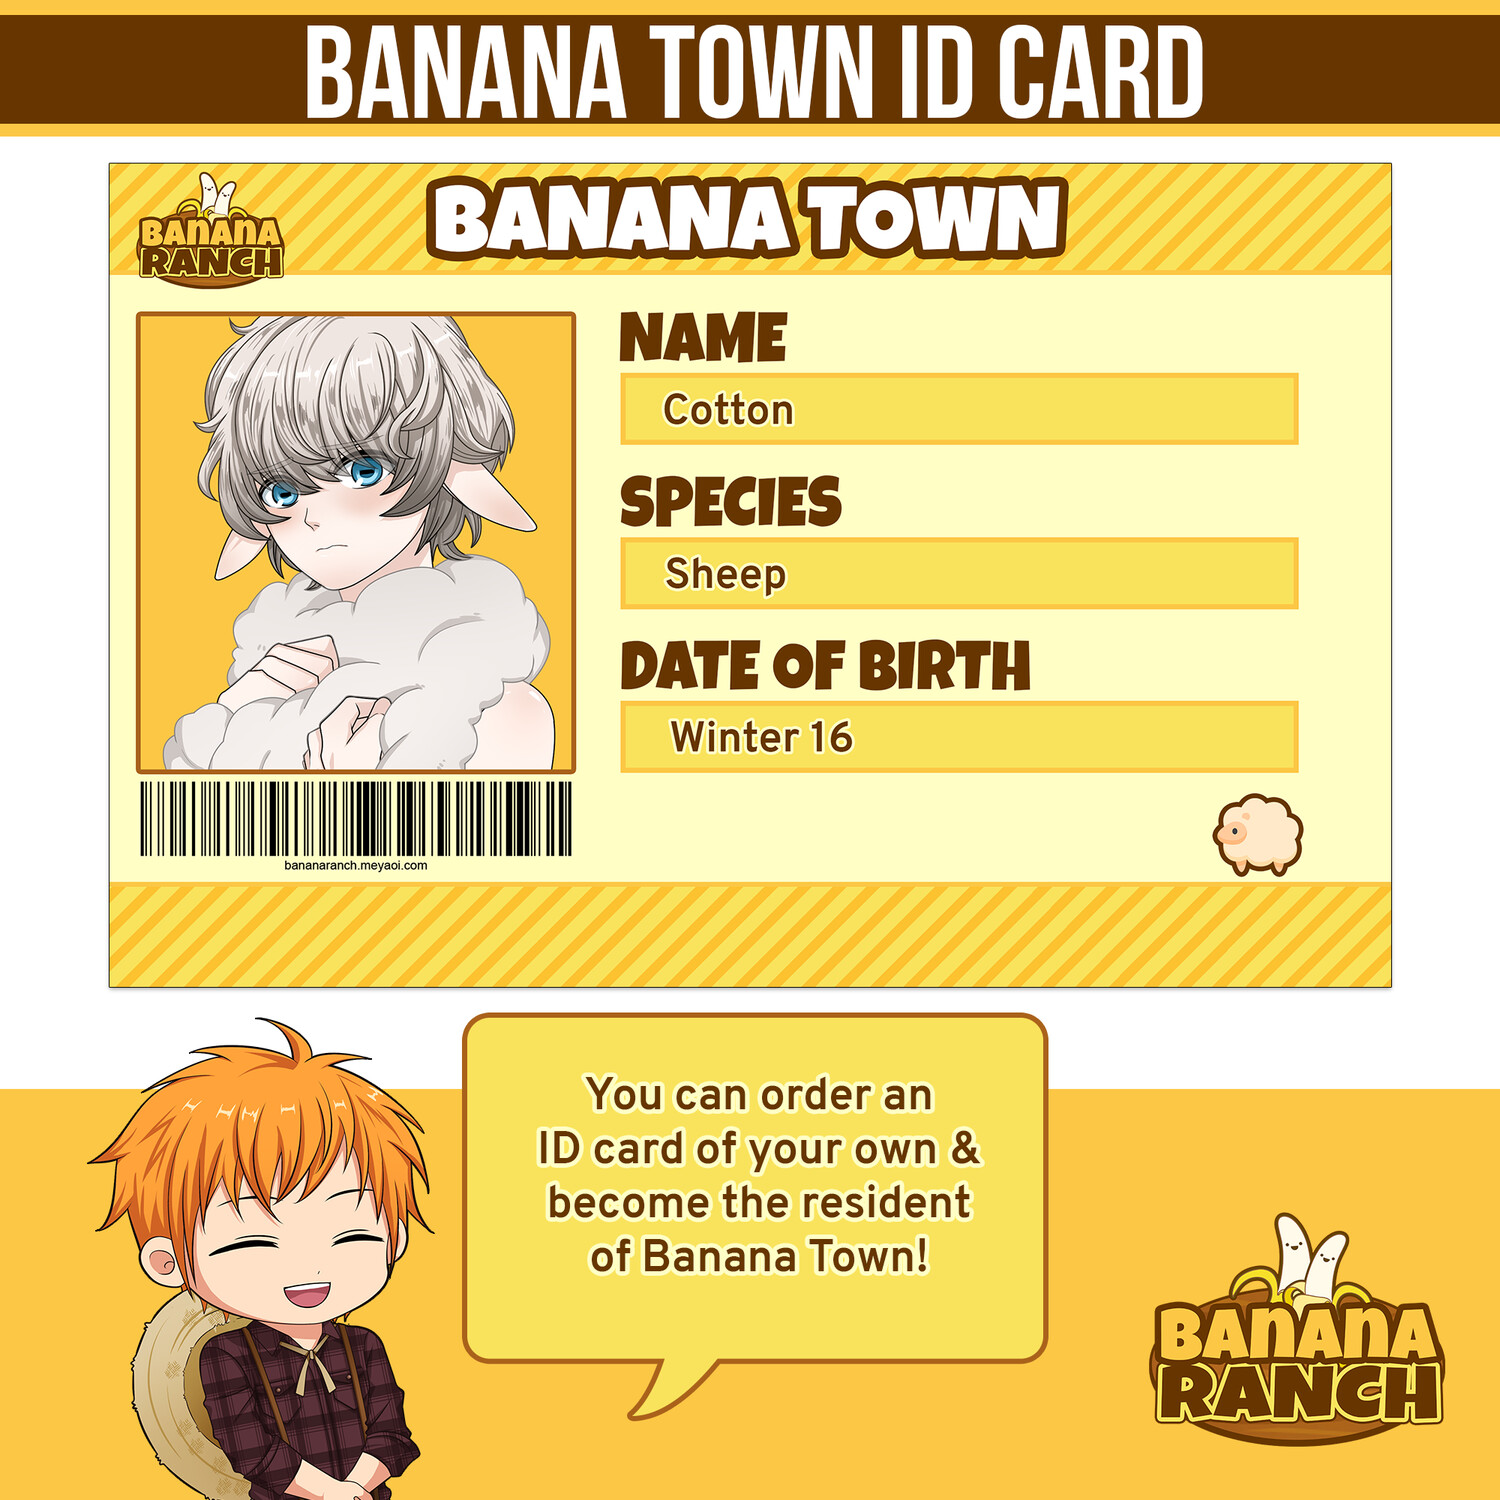 Banana Town ID Card